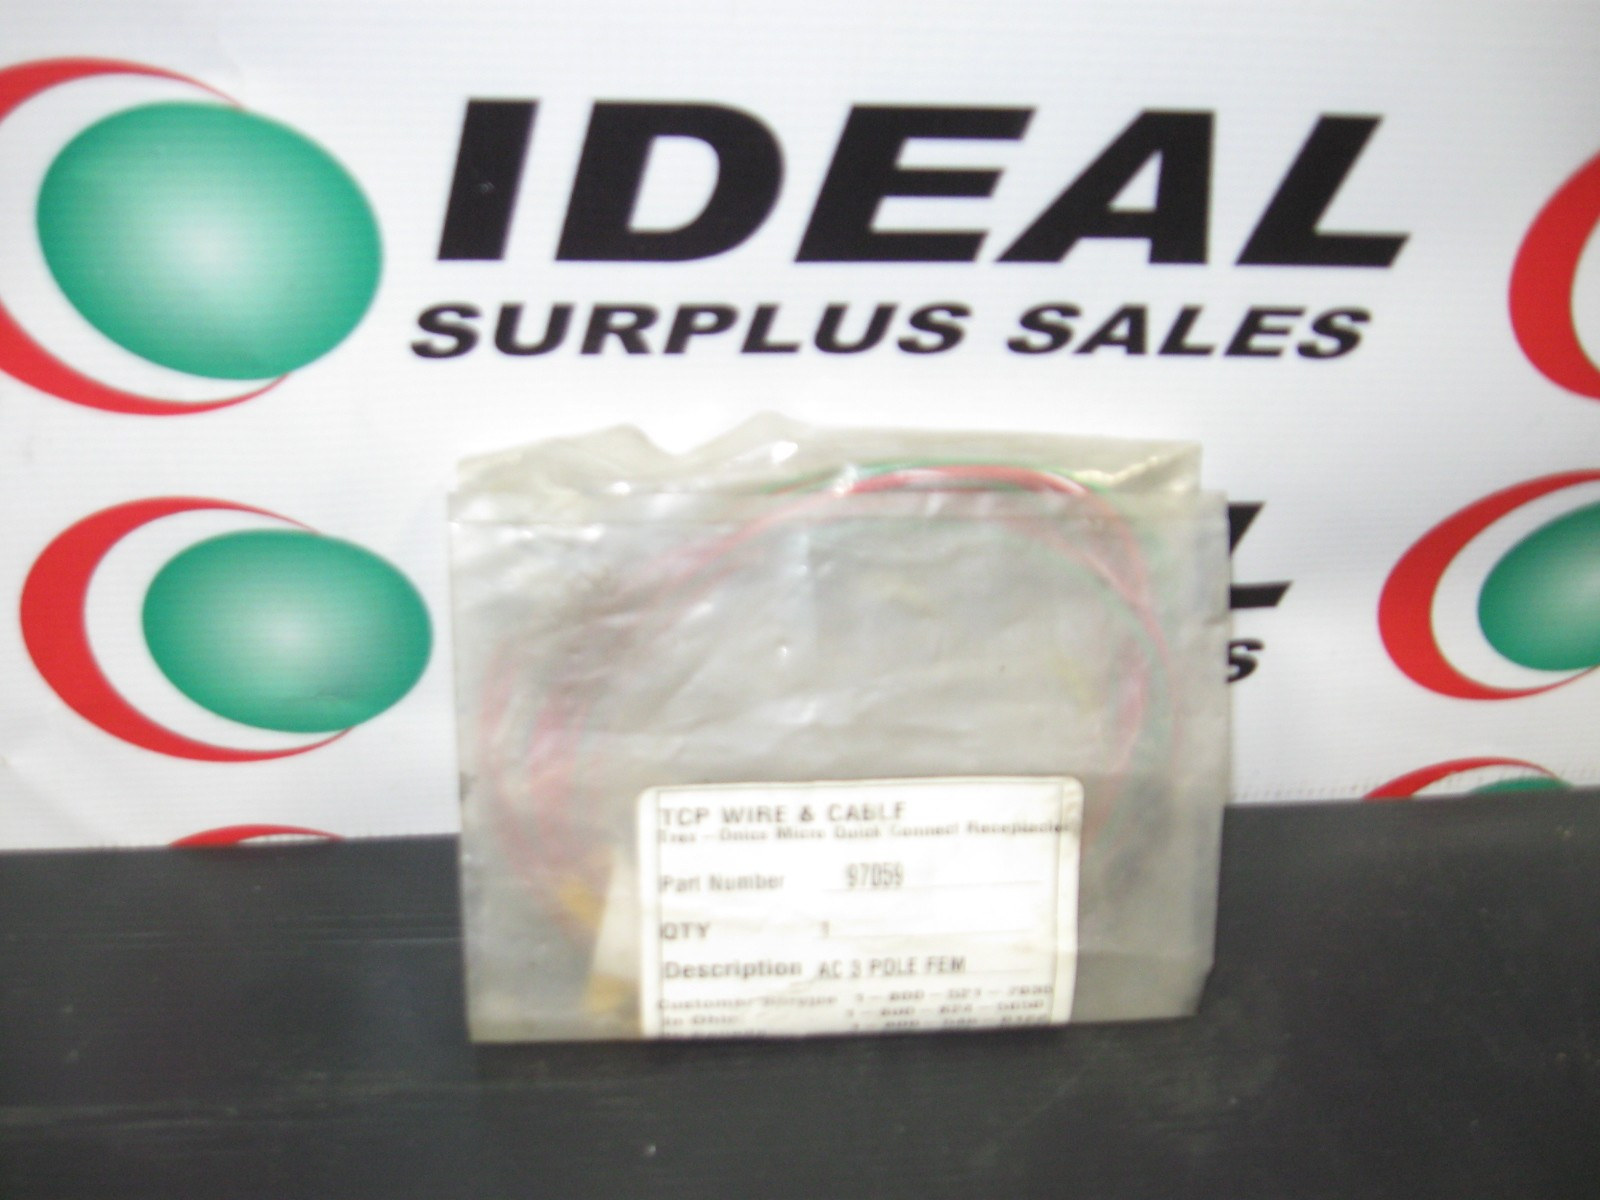 TPC WIRE & CABLE 97059 | Ideal Surplus